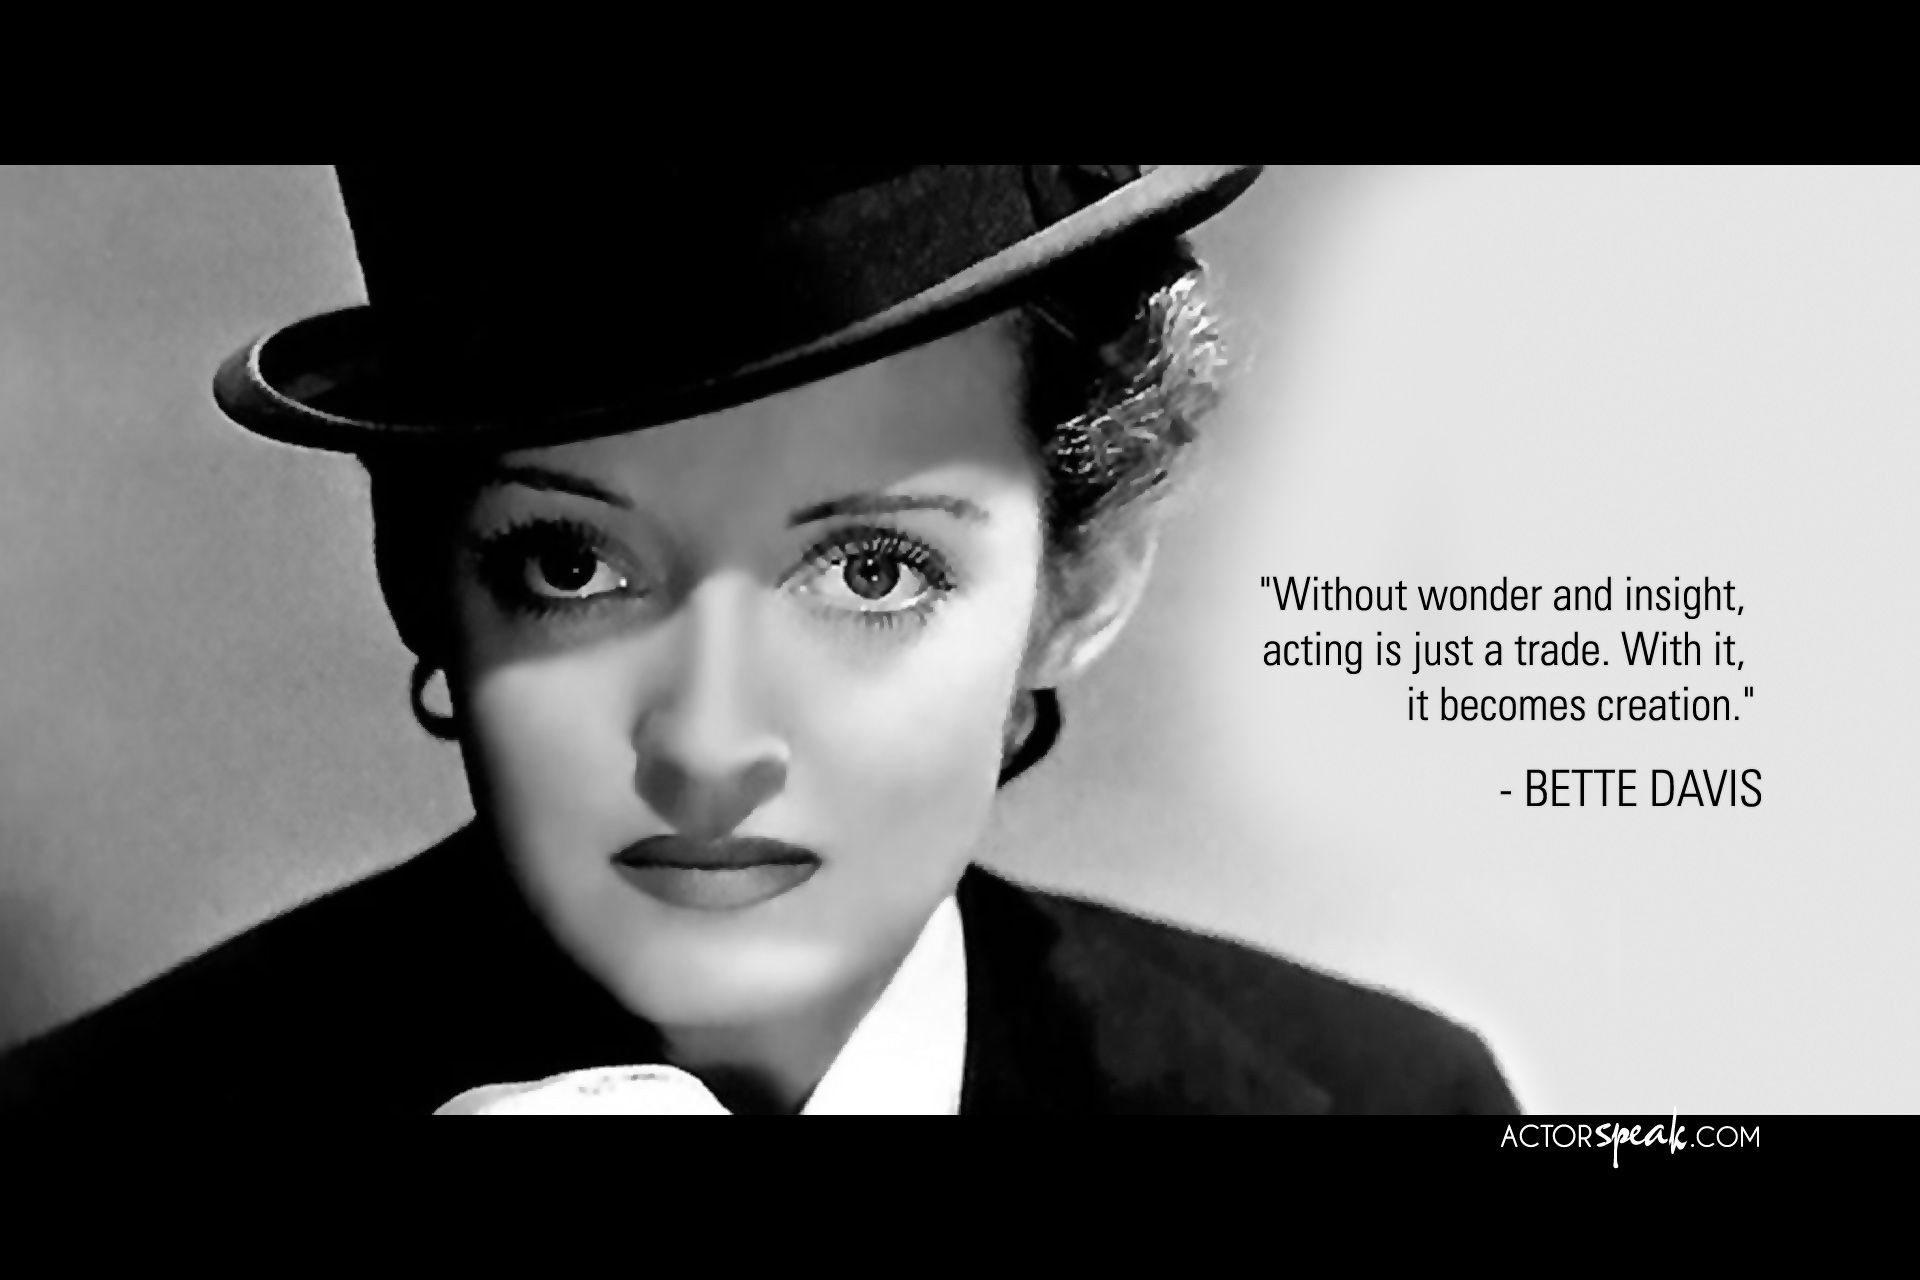 Betty white quotes quotesgram - Actor Quotes About Life And Love Actor Quote In Black White Bacground Classic And Elegant Mactoons Art Inspiration